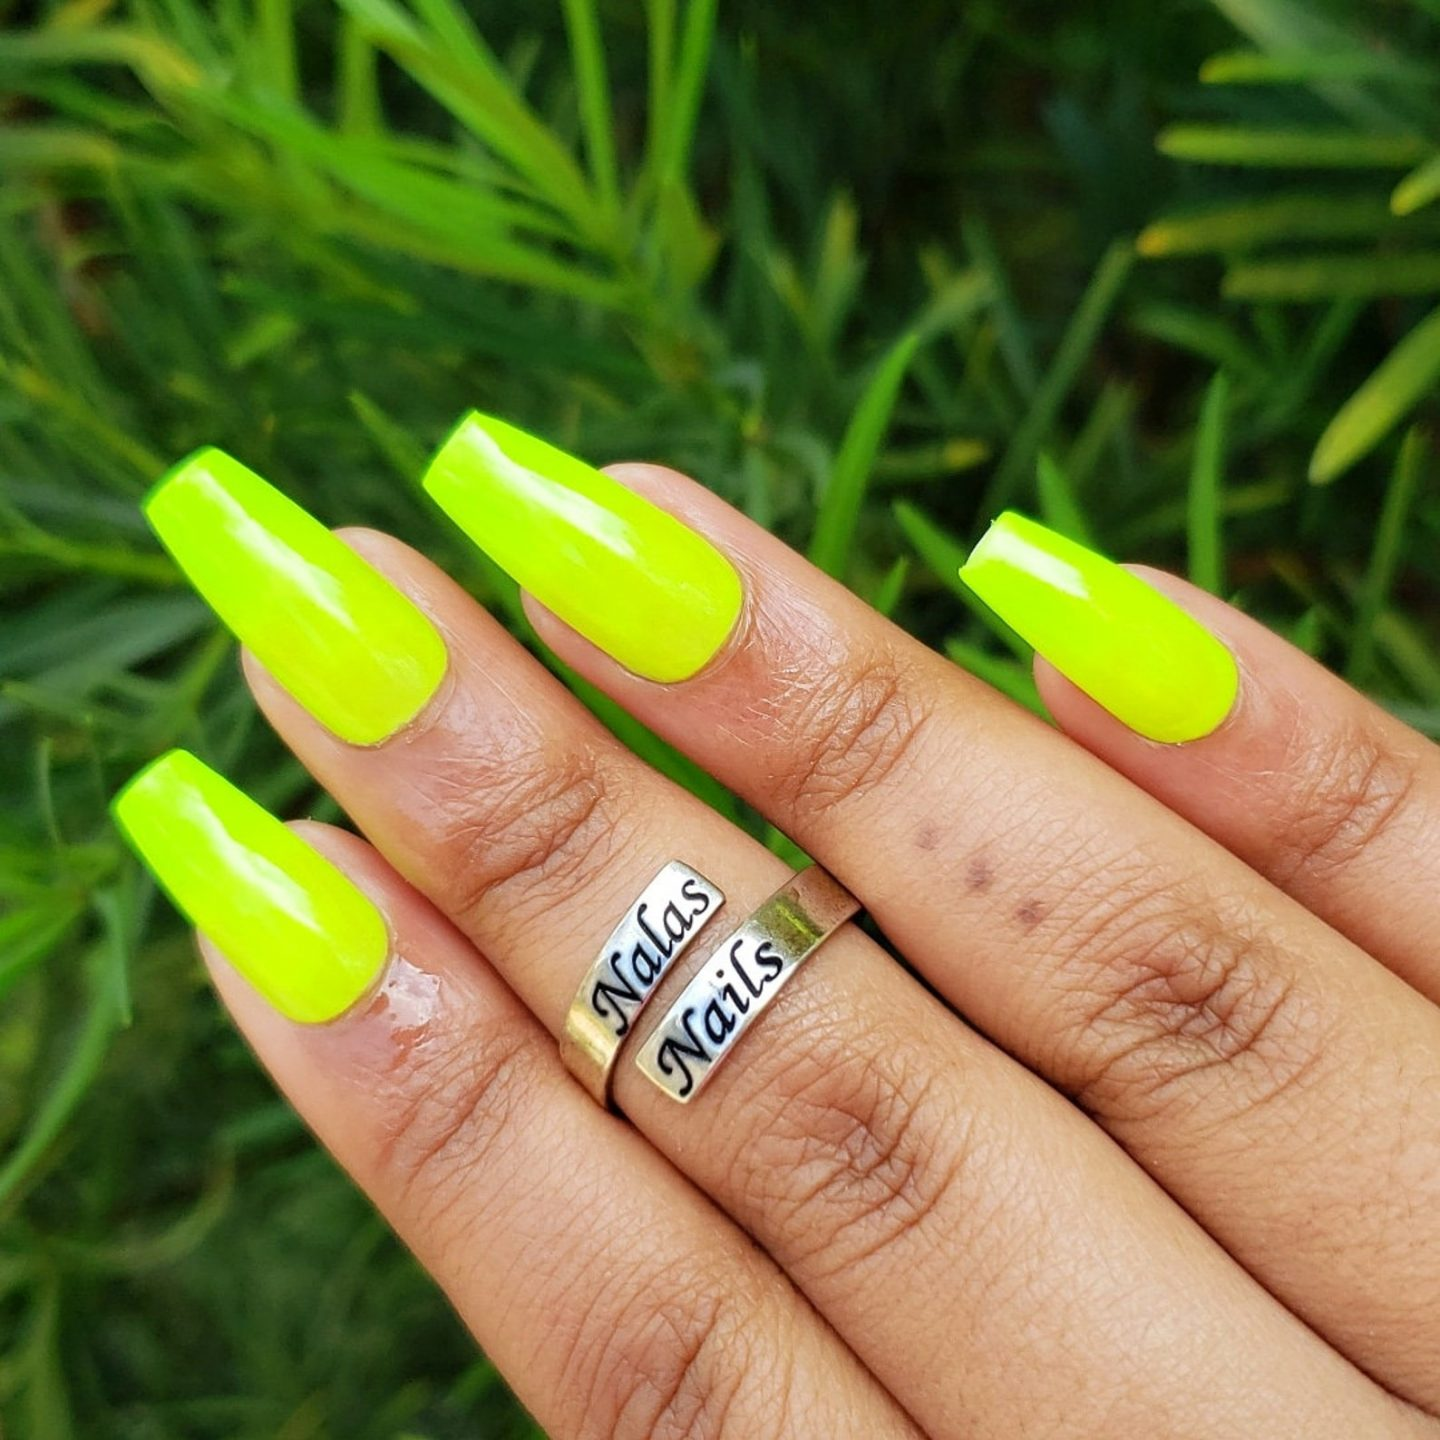 Neon yellow coffin press on nails